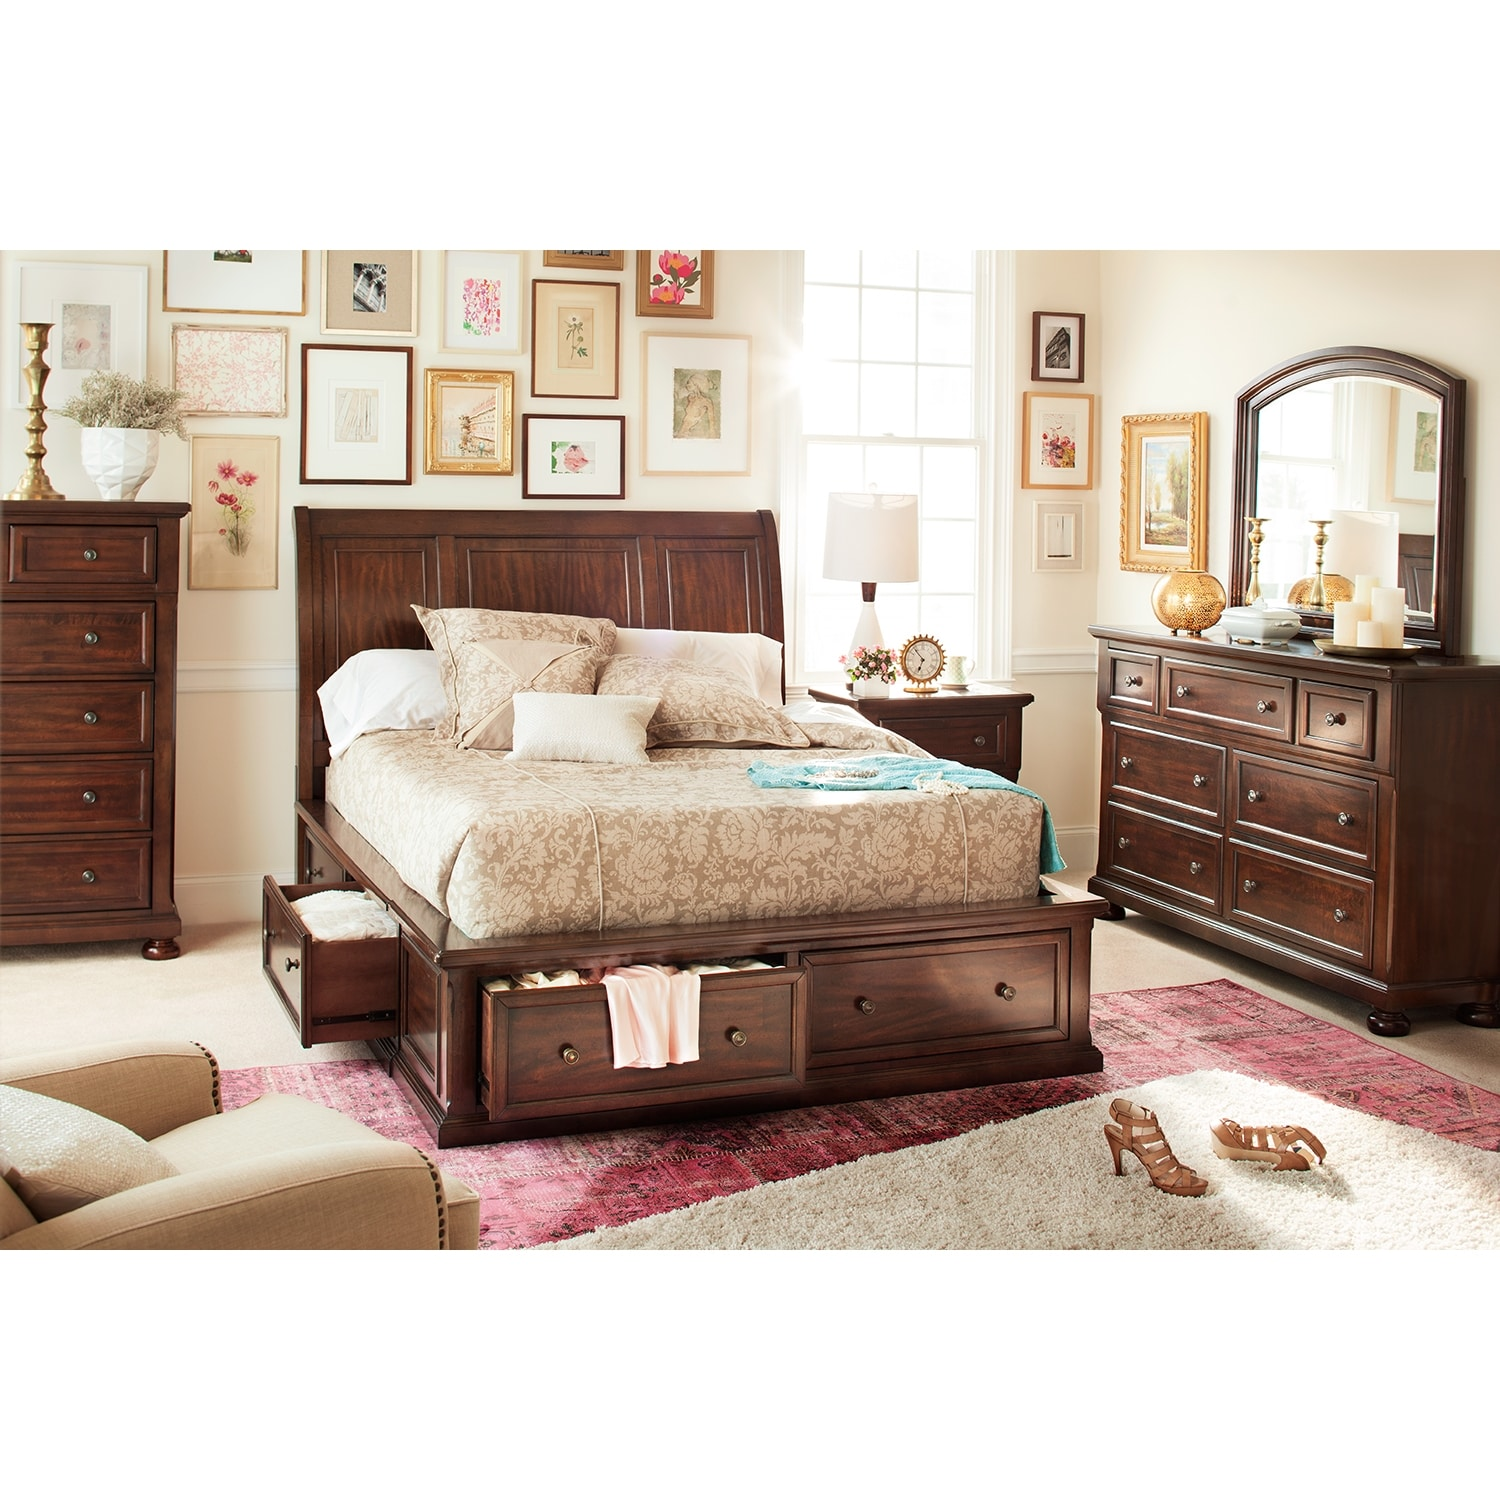 Hanover 7-Piece Queen Storage Bedroom Set - Cherry